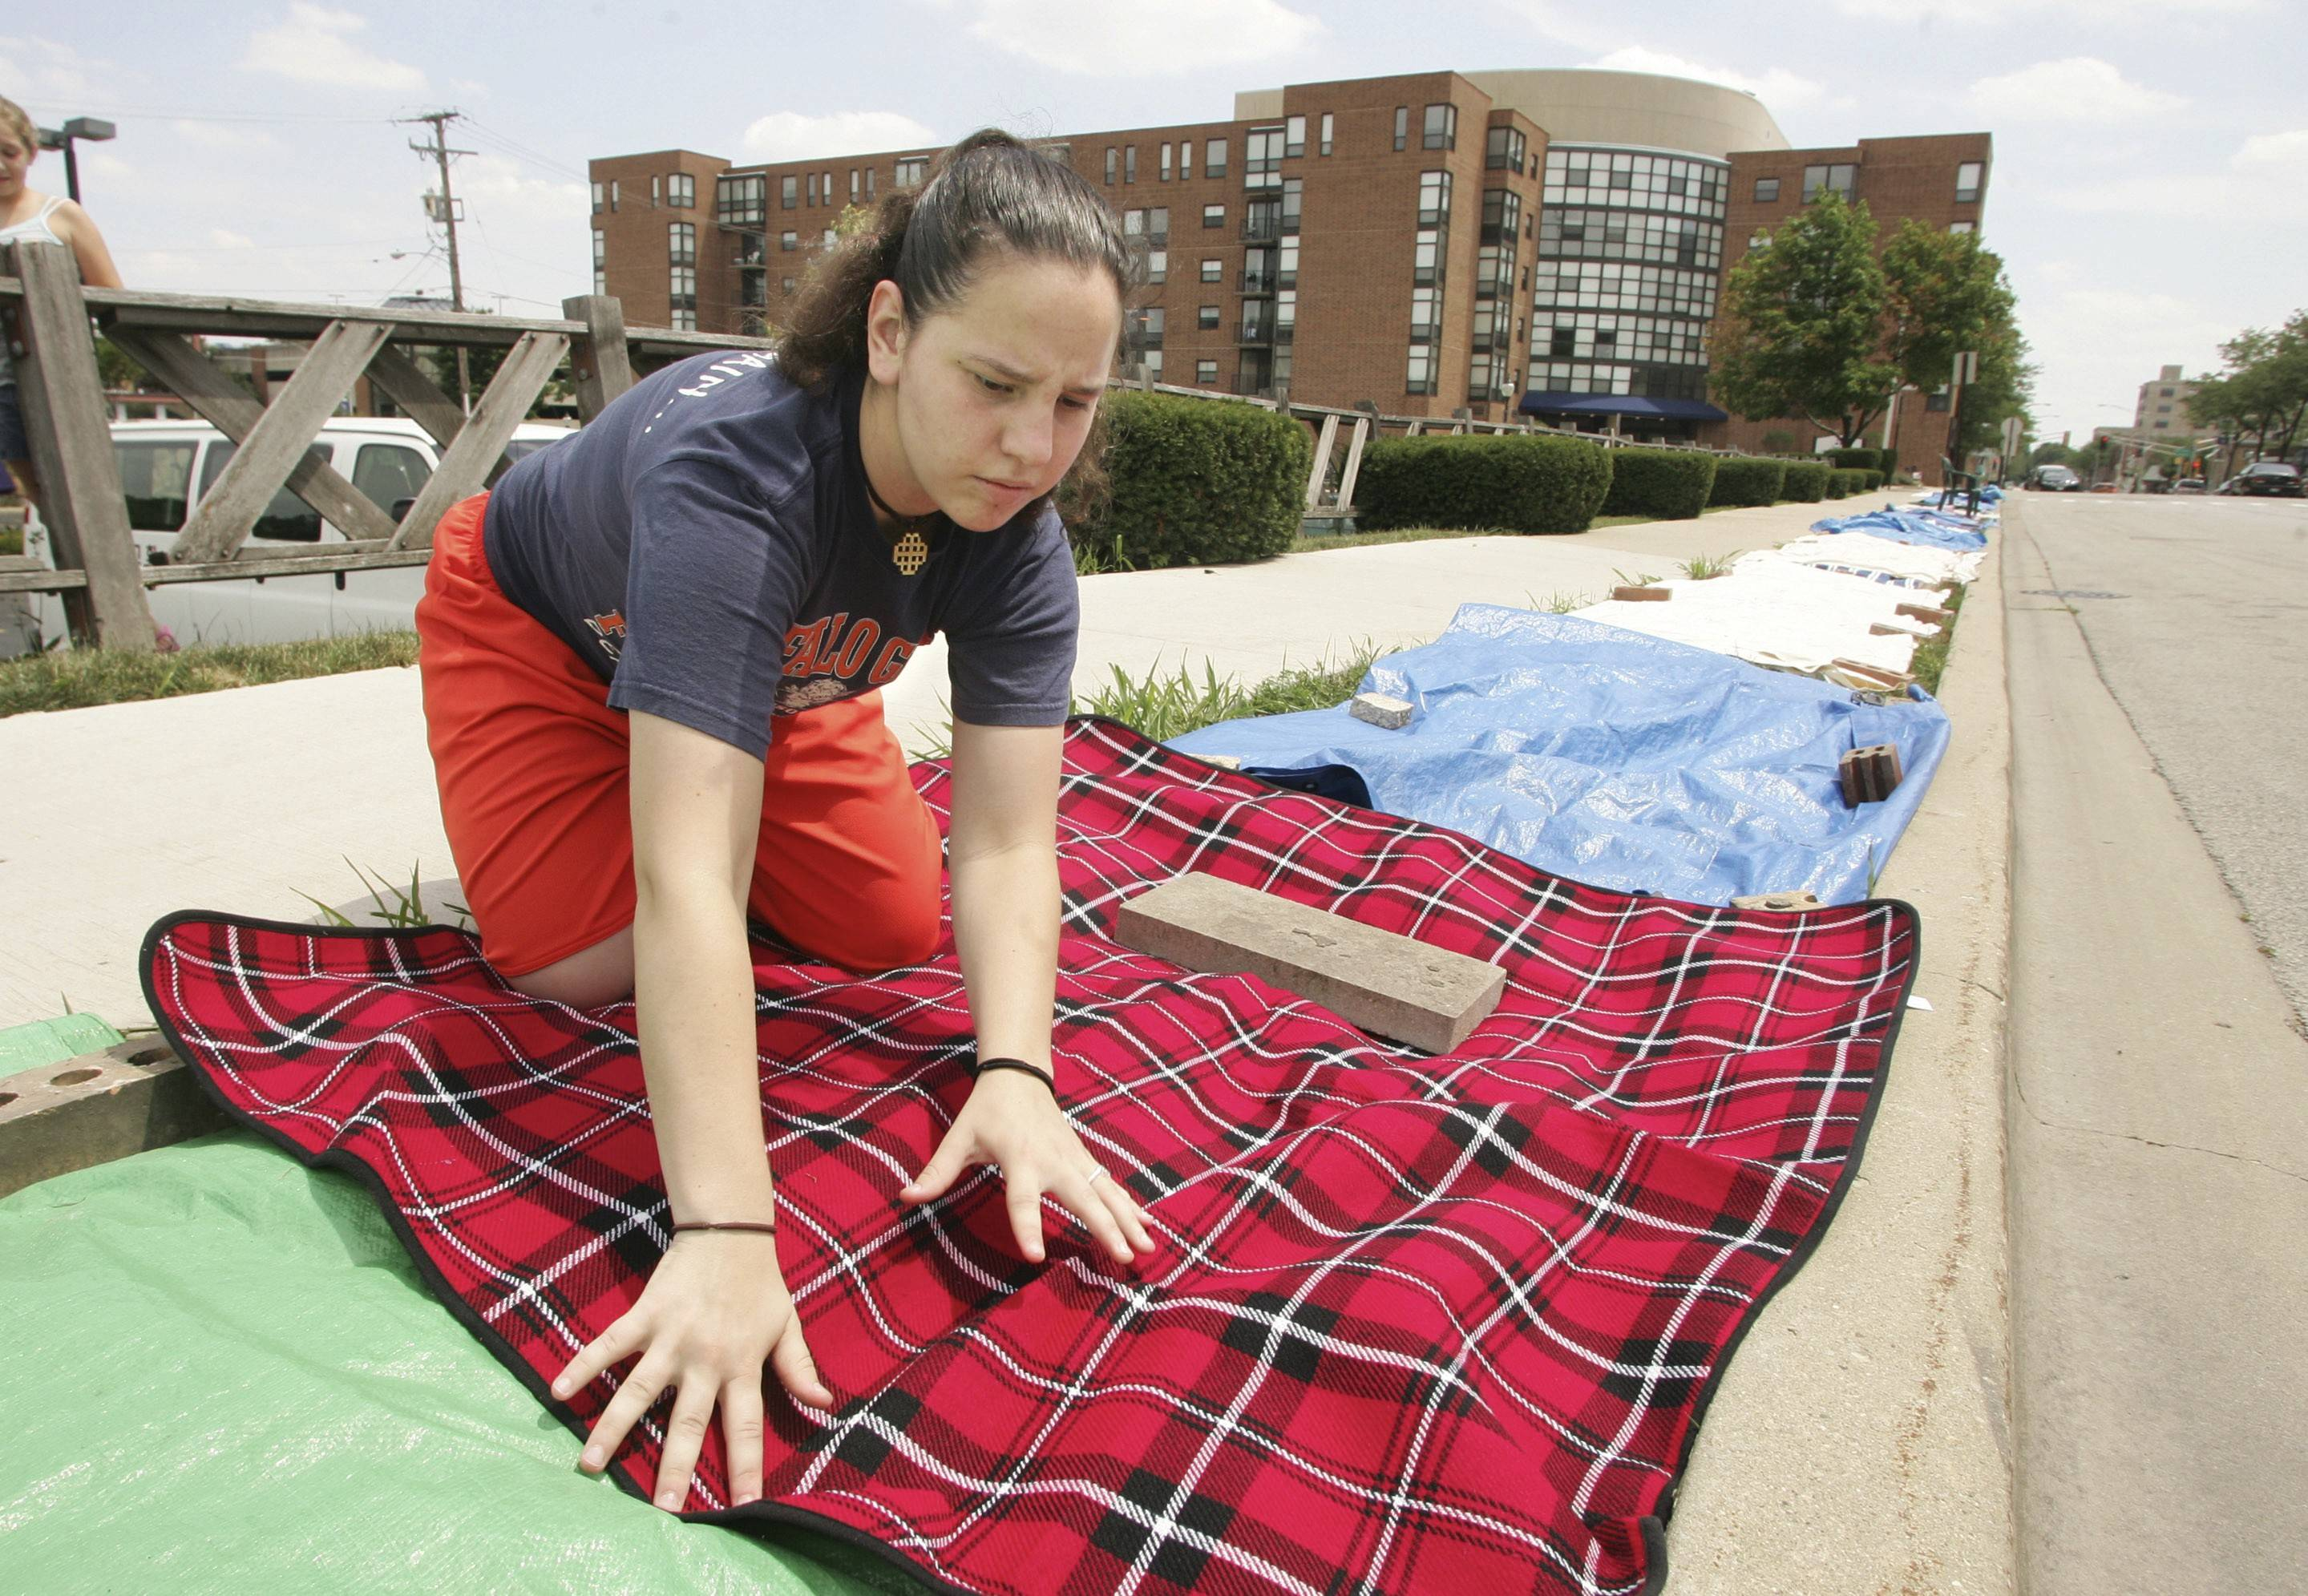 A woman lays down a blanket alongside hundreds of other blankets, plastic tarps, and chairs placed along Dunton Avenue to reserve places to watch the Fourth of July parade in Arlington Heights.